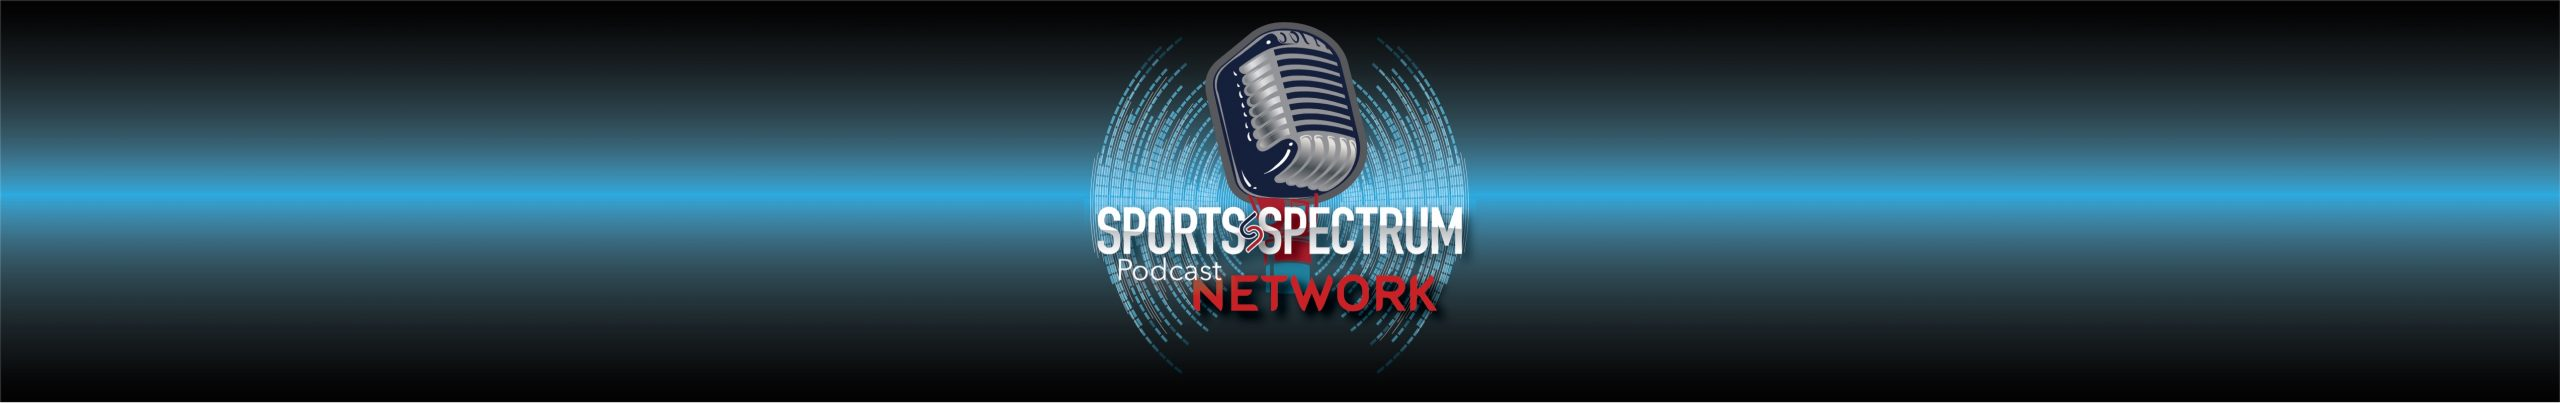 Sports Spectrum Podcast Network